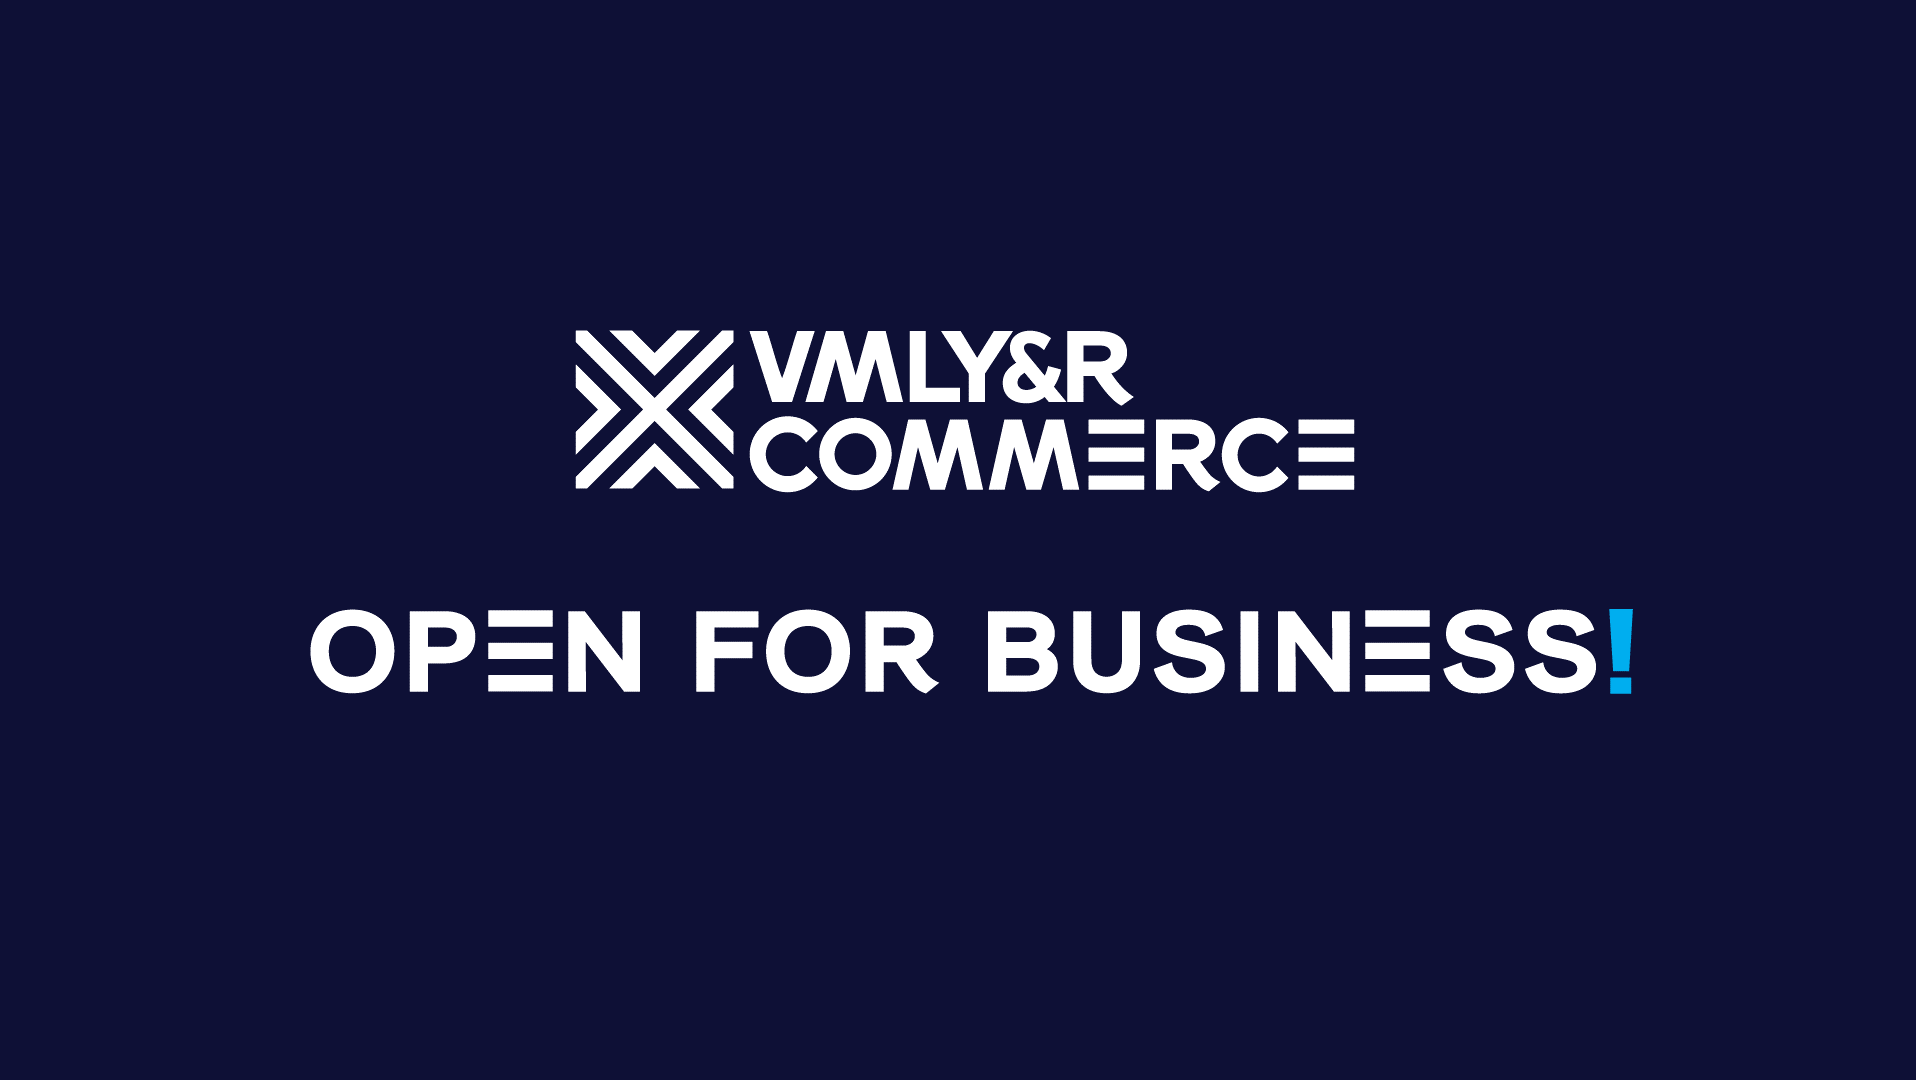 VMLY&R COMMERCE BECOMES WPP'S NEW END-TO-END CREATIVE COMMERCE COMPANY